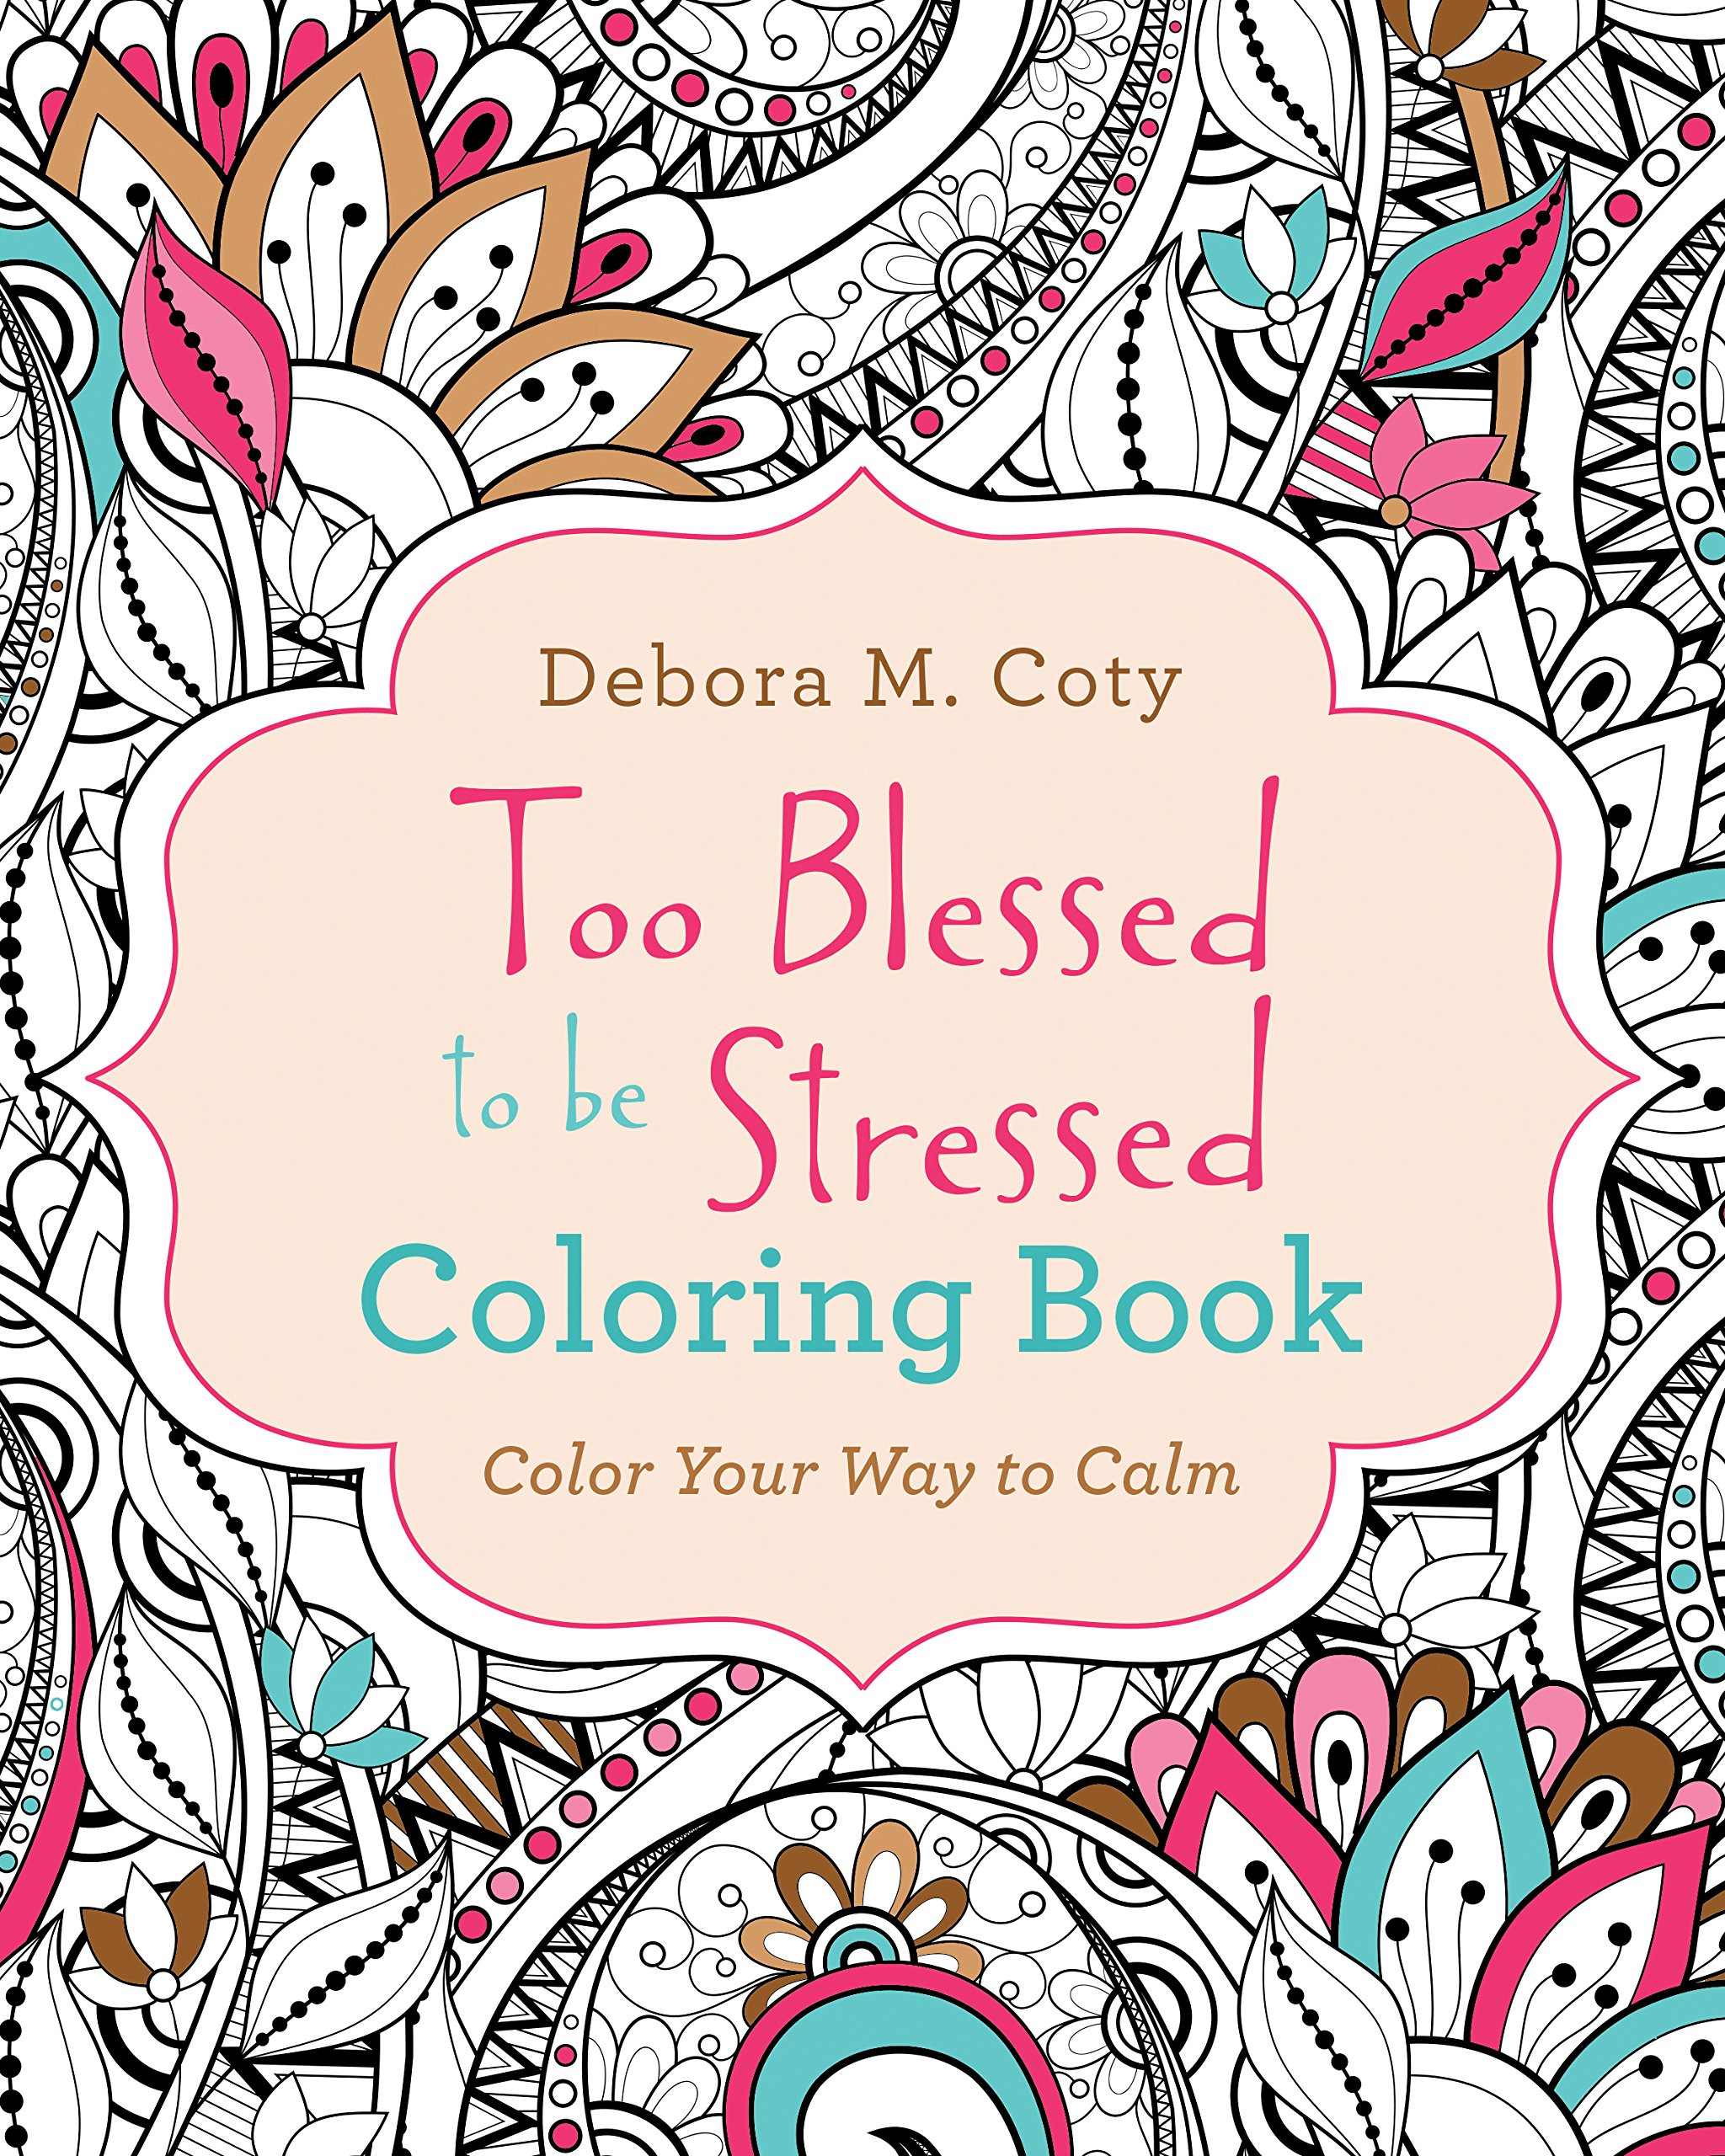 Coloring book color of art - Amazon Com Too Blessed To Be Stressed Coloring Book Color Yourself Inspired 9781634099691 Debora M Coty Books